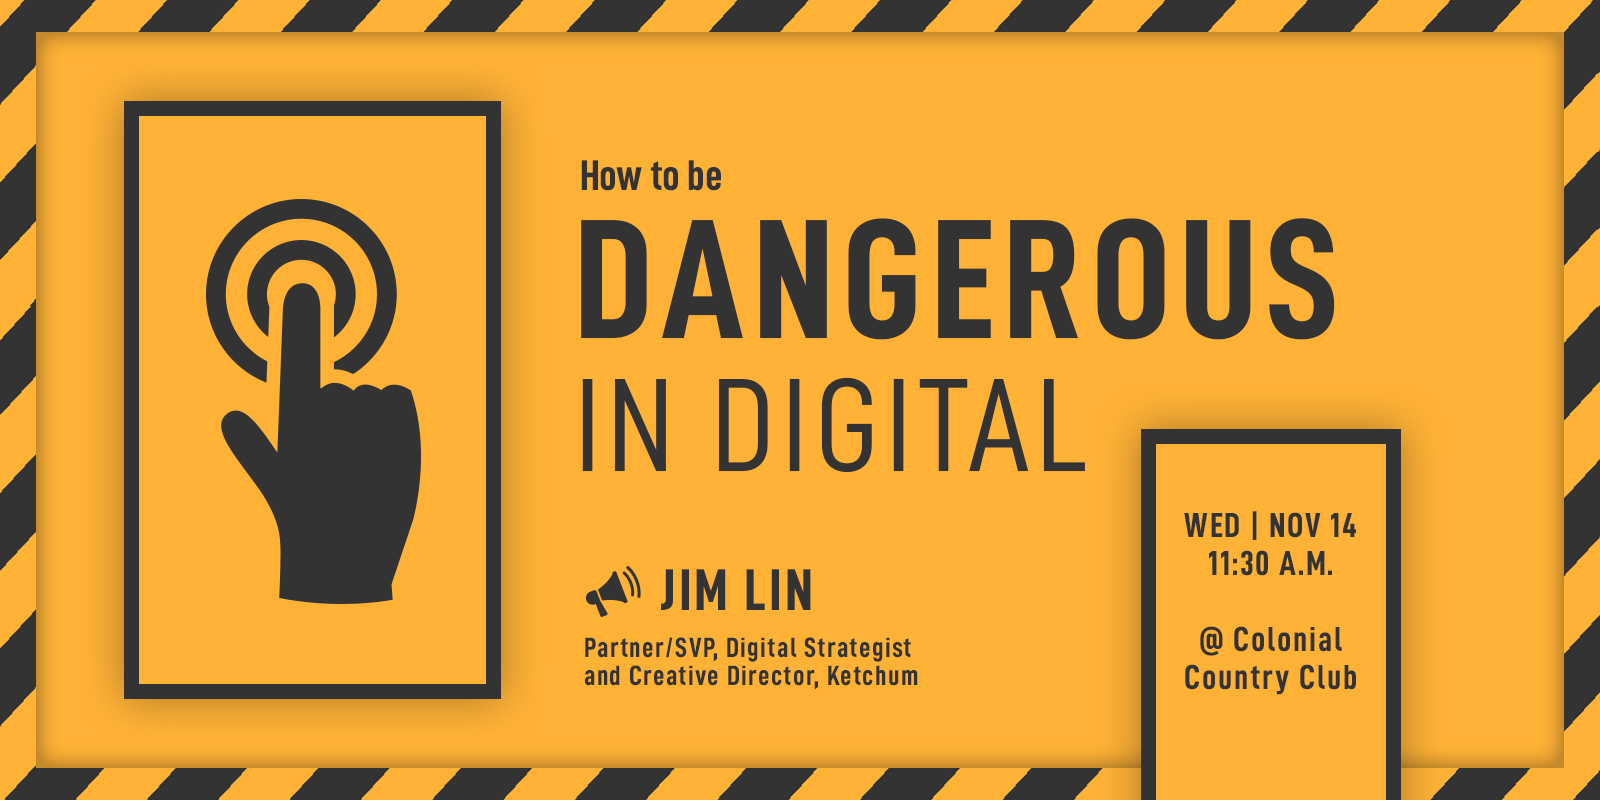 How to be Dangerous in Digital